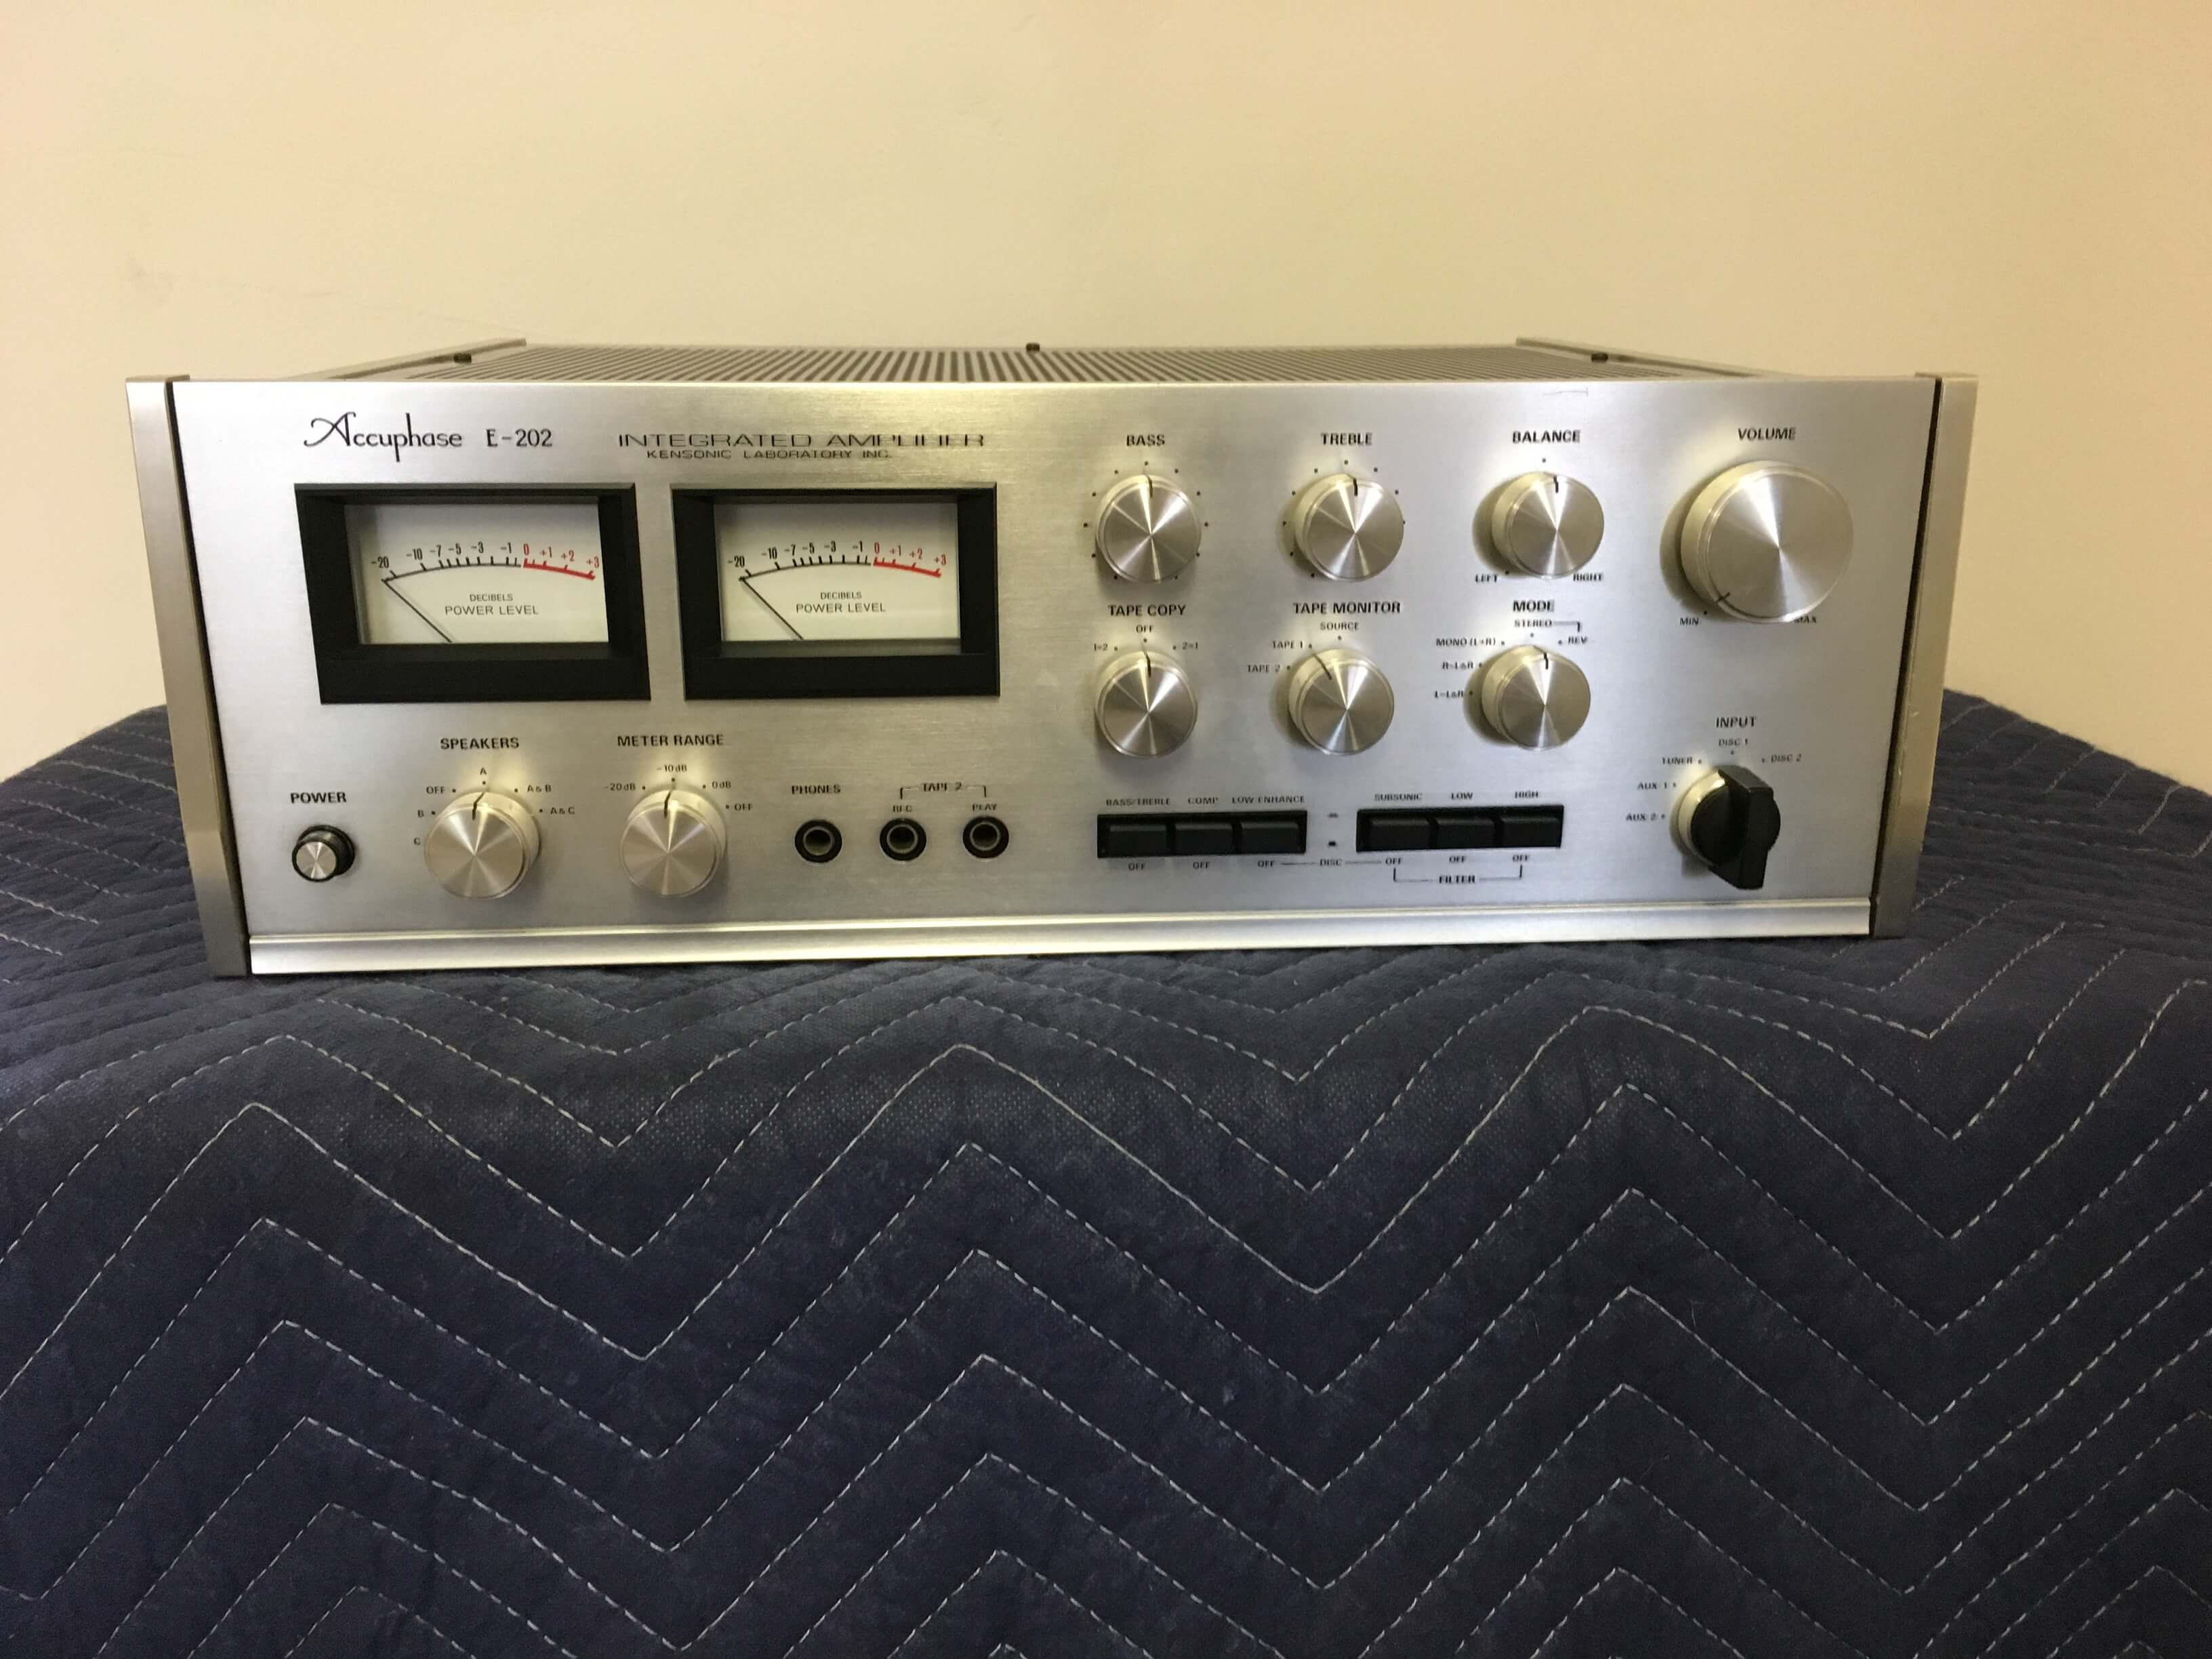 Accuphase E-202 integrated amplifier